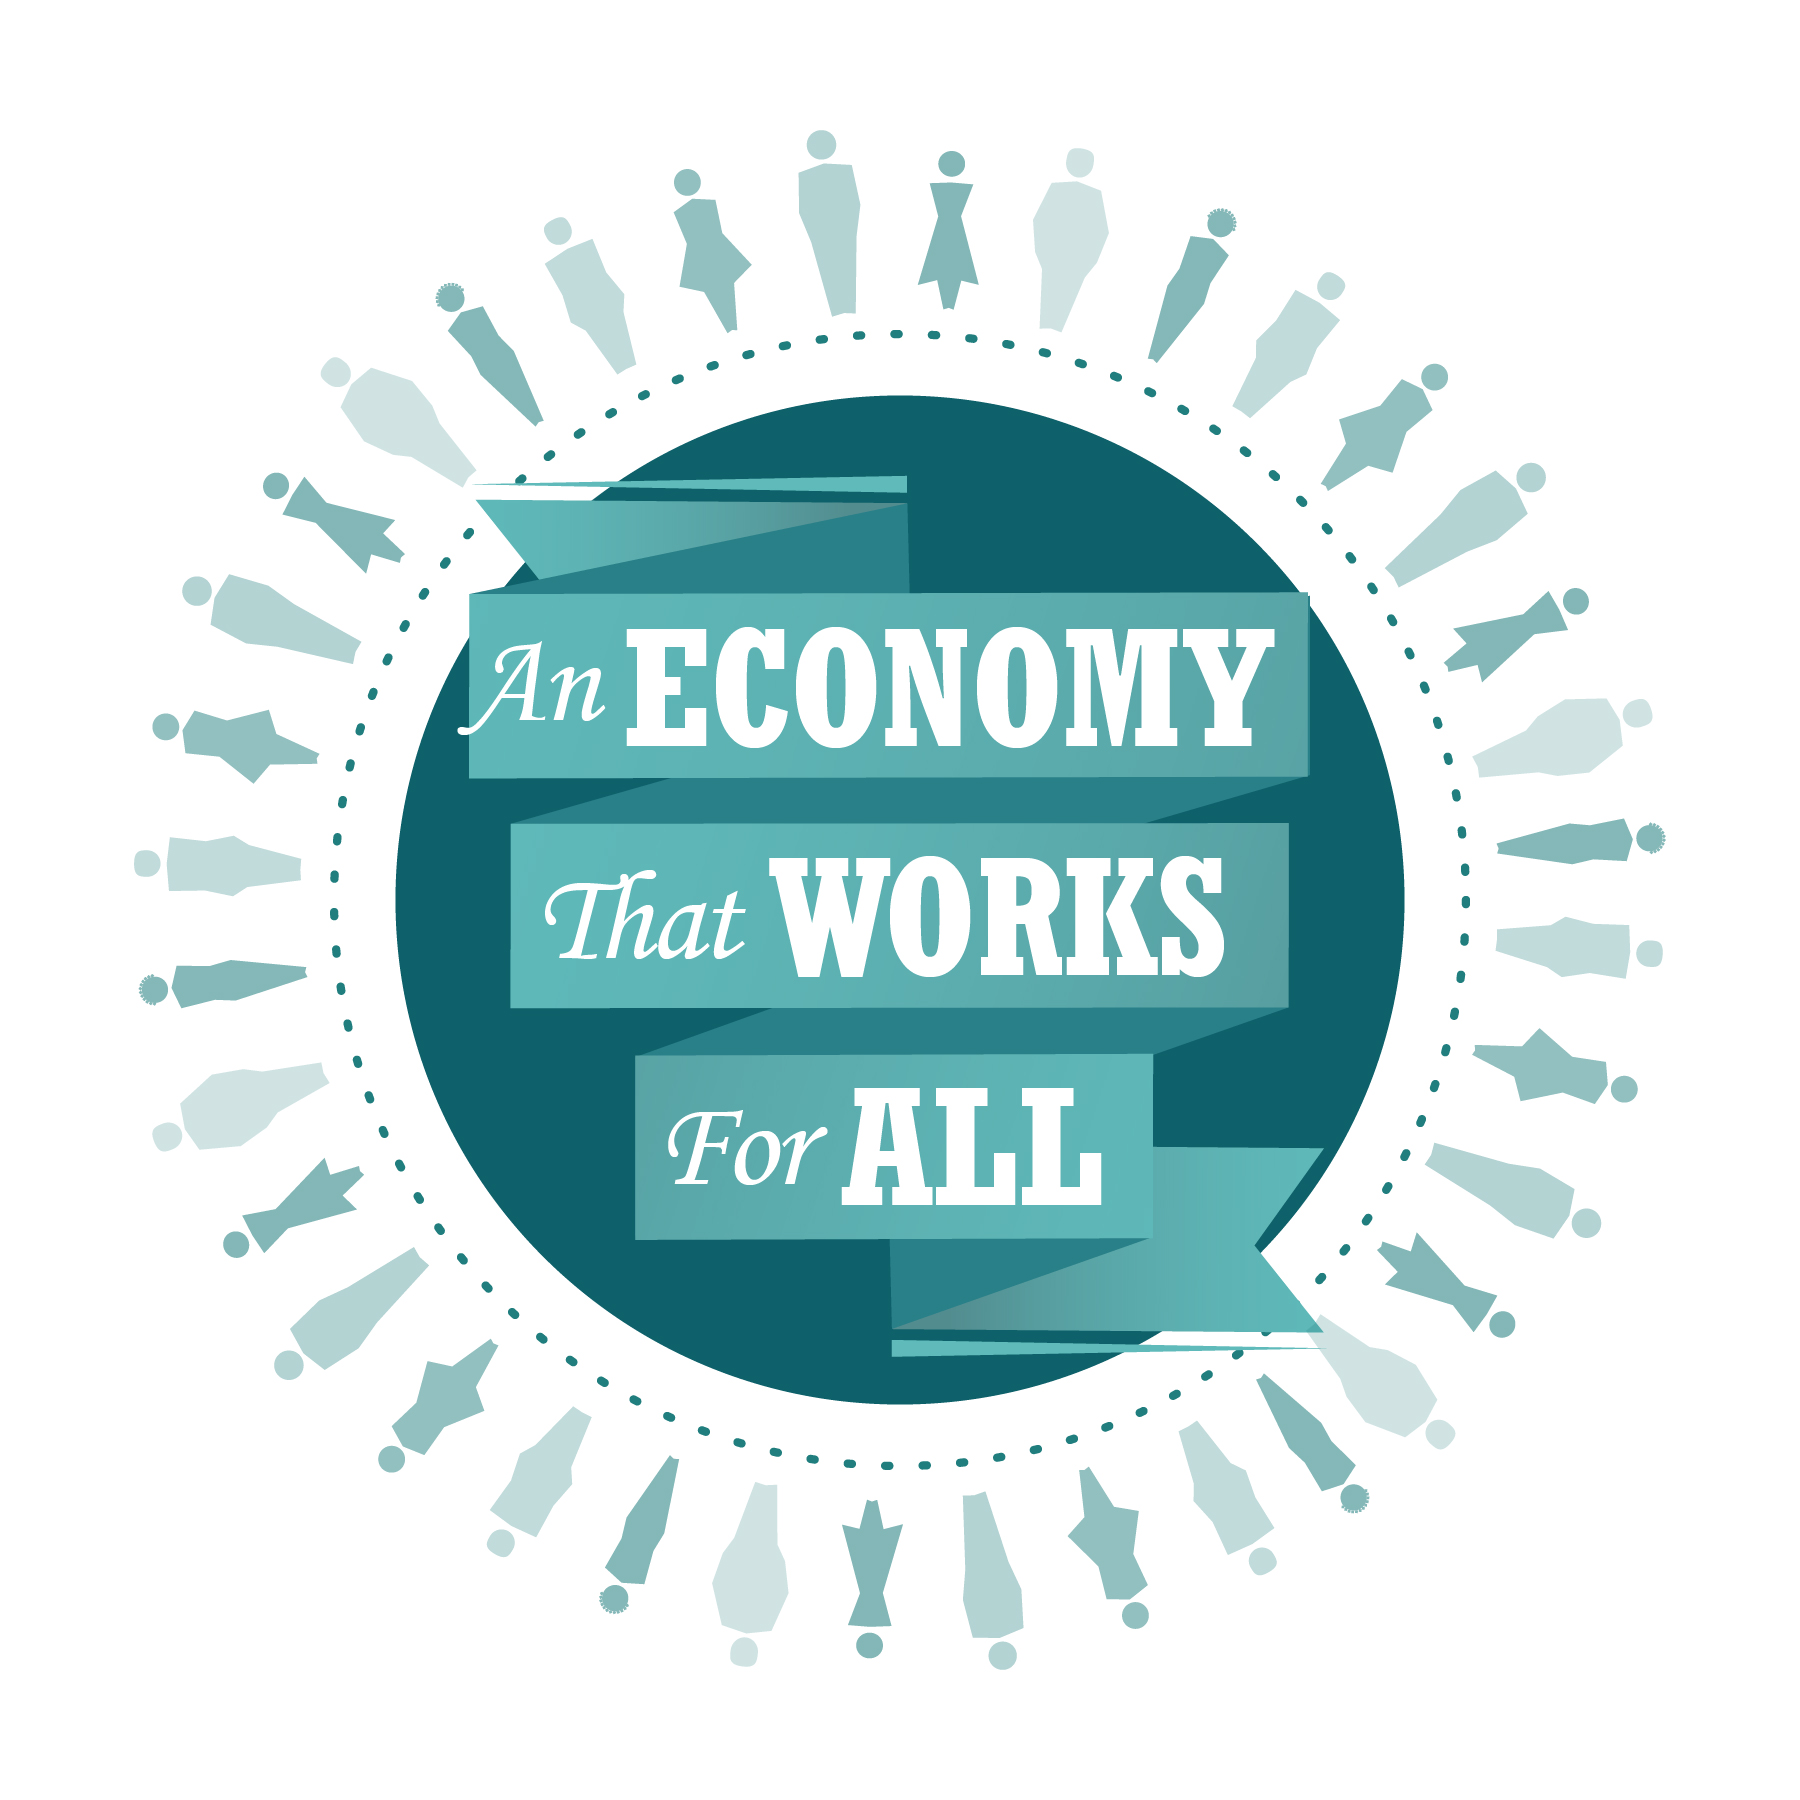 Economy that works for all5